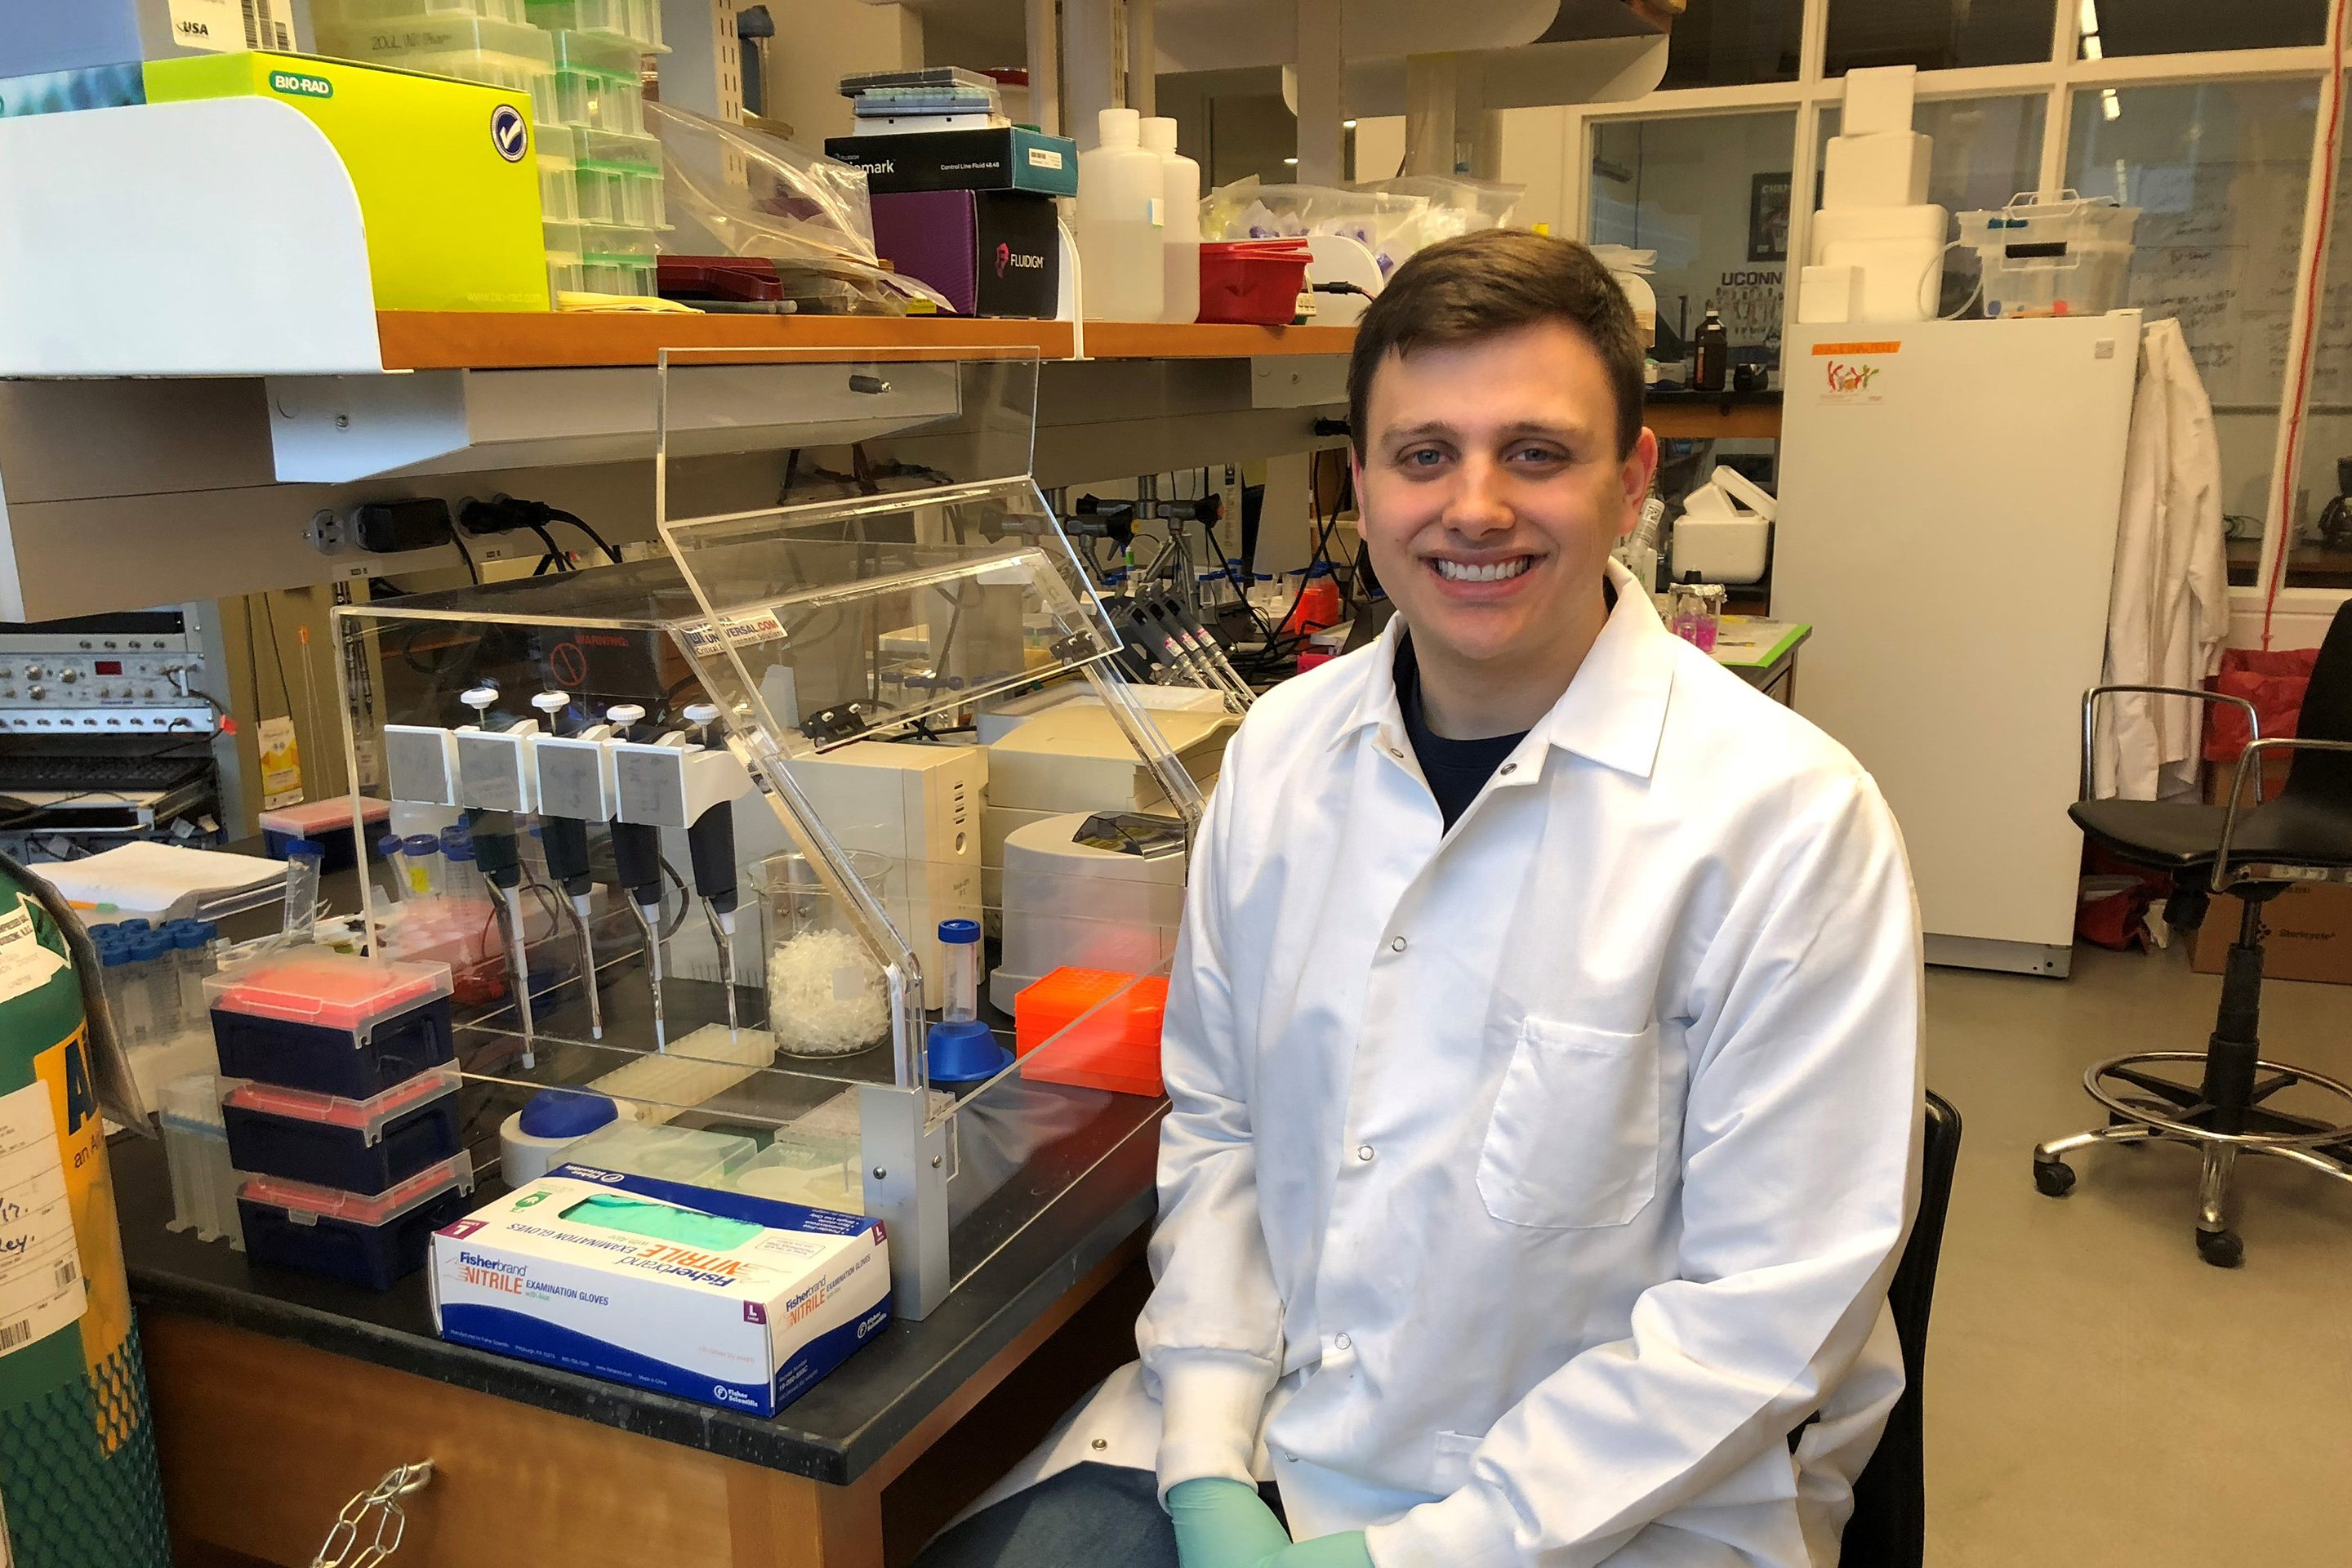 Colin Cleary, a first year doctoral student in UConn's Department of Physiology and Neurobiology (PNB) (Photo provided by Colin Cleary).